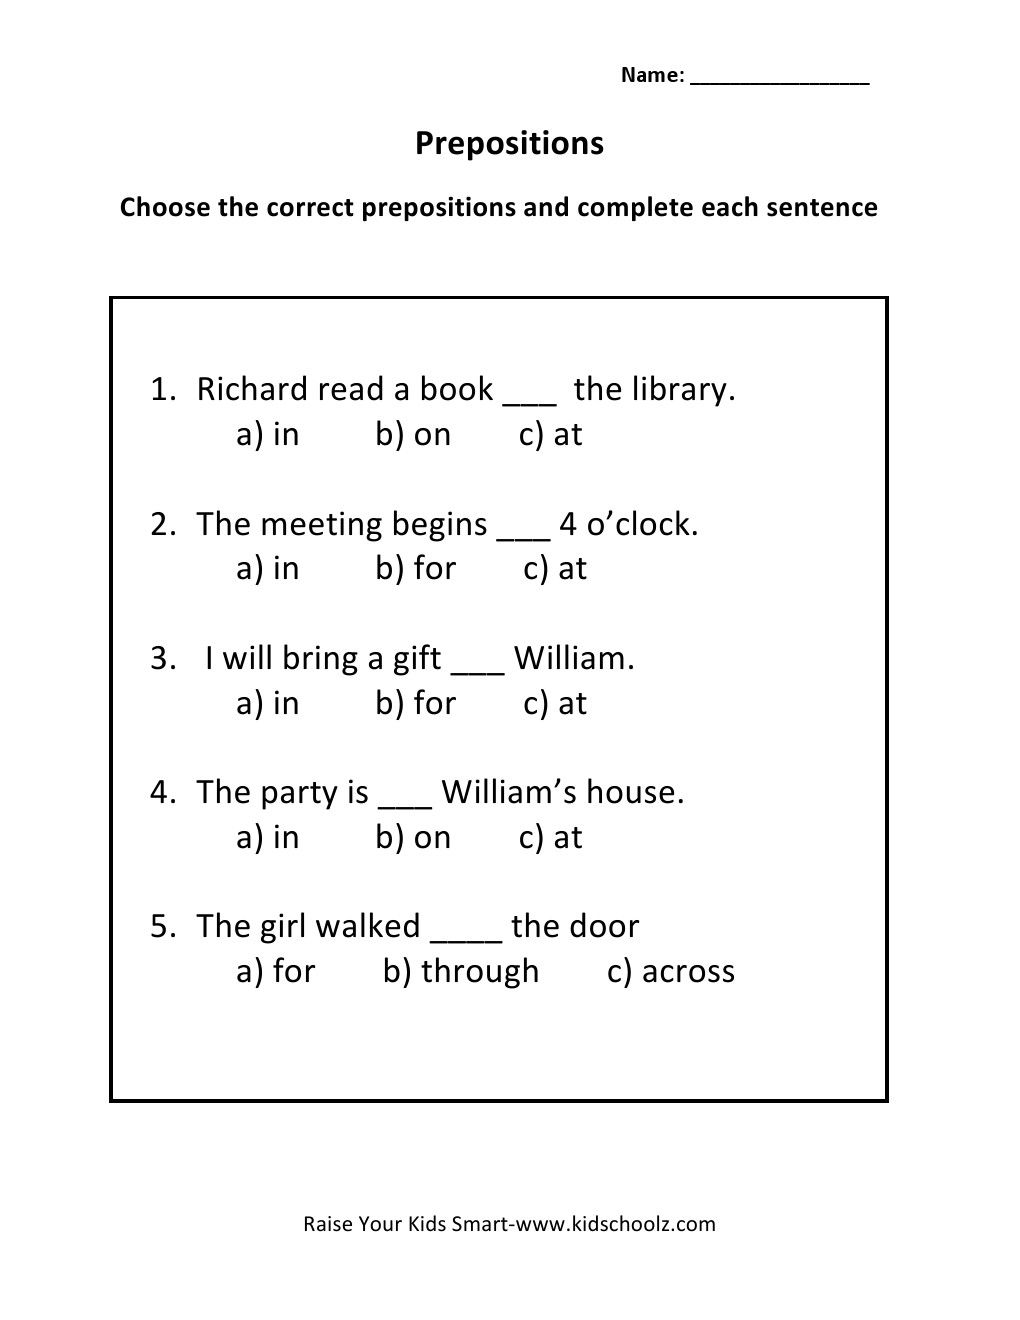 Workbooks worksheets for grade 3 : Grade 3 - Prepositions Worksheet 1 - Kidschoolz